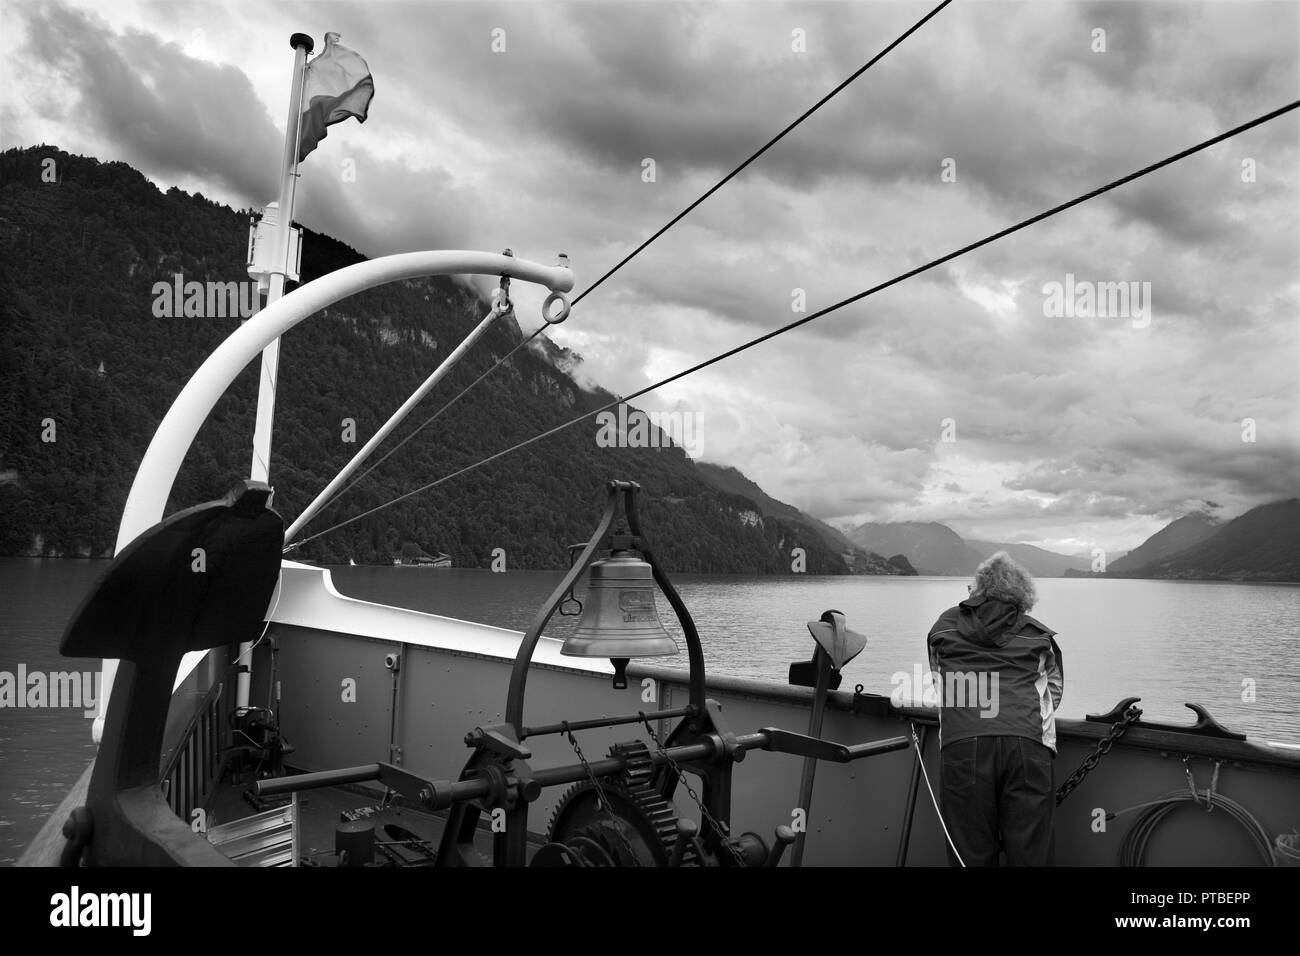 PS Lötschberg (built in 1914 by Escher-Wyss, Zurich) under way on the Brienzersee on a cloudy day, and approaching Giessbach.  Black and white version - Stock Image